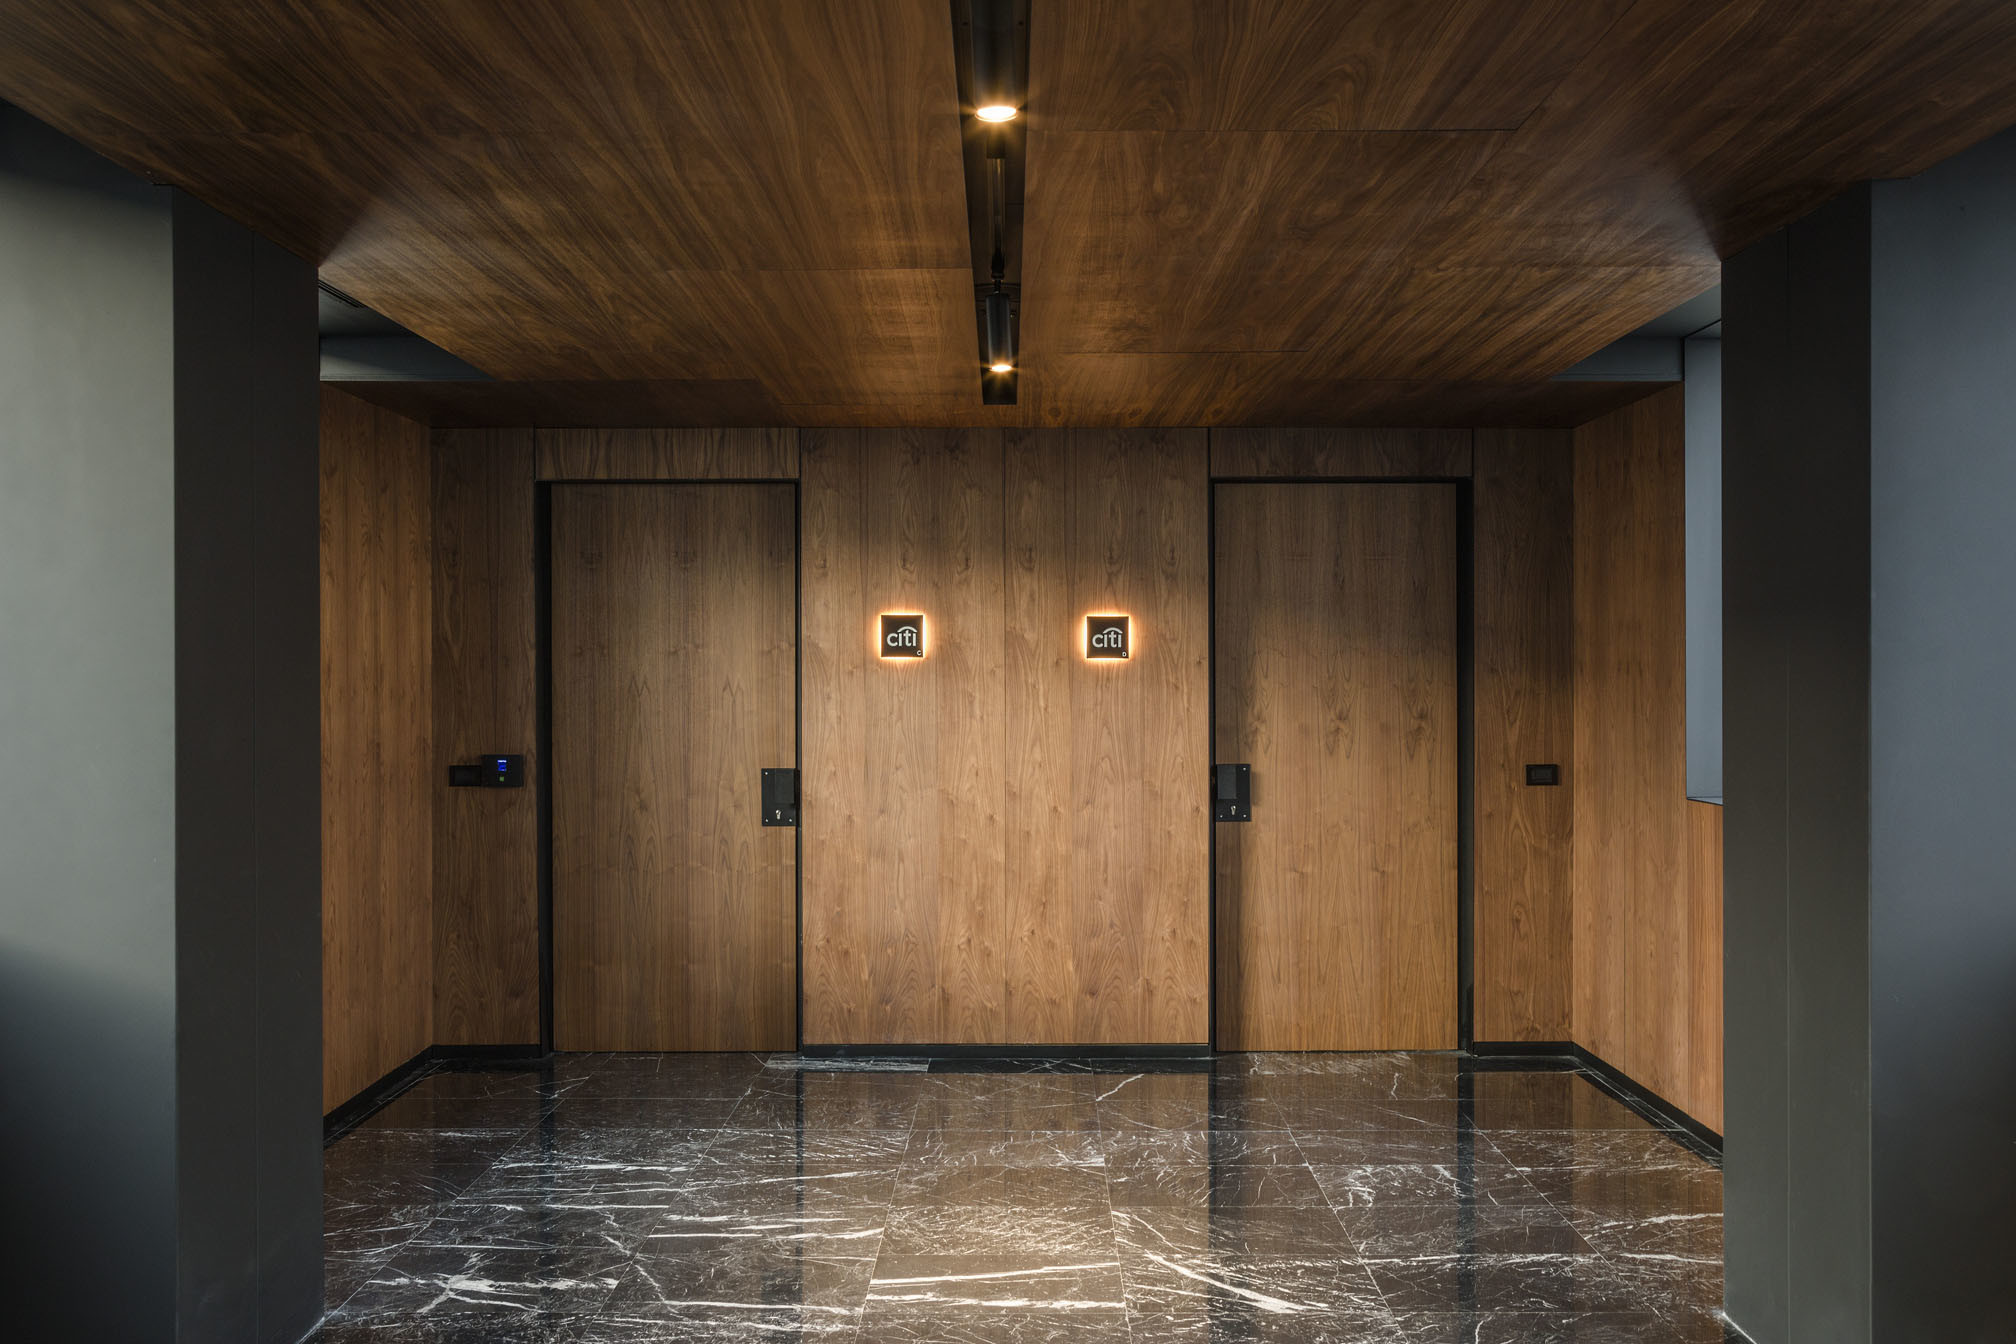 Doors with card reader